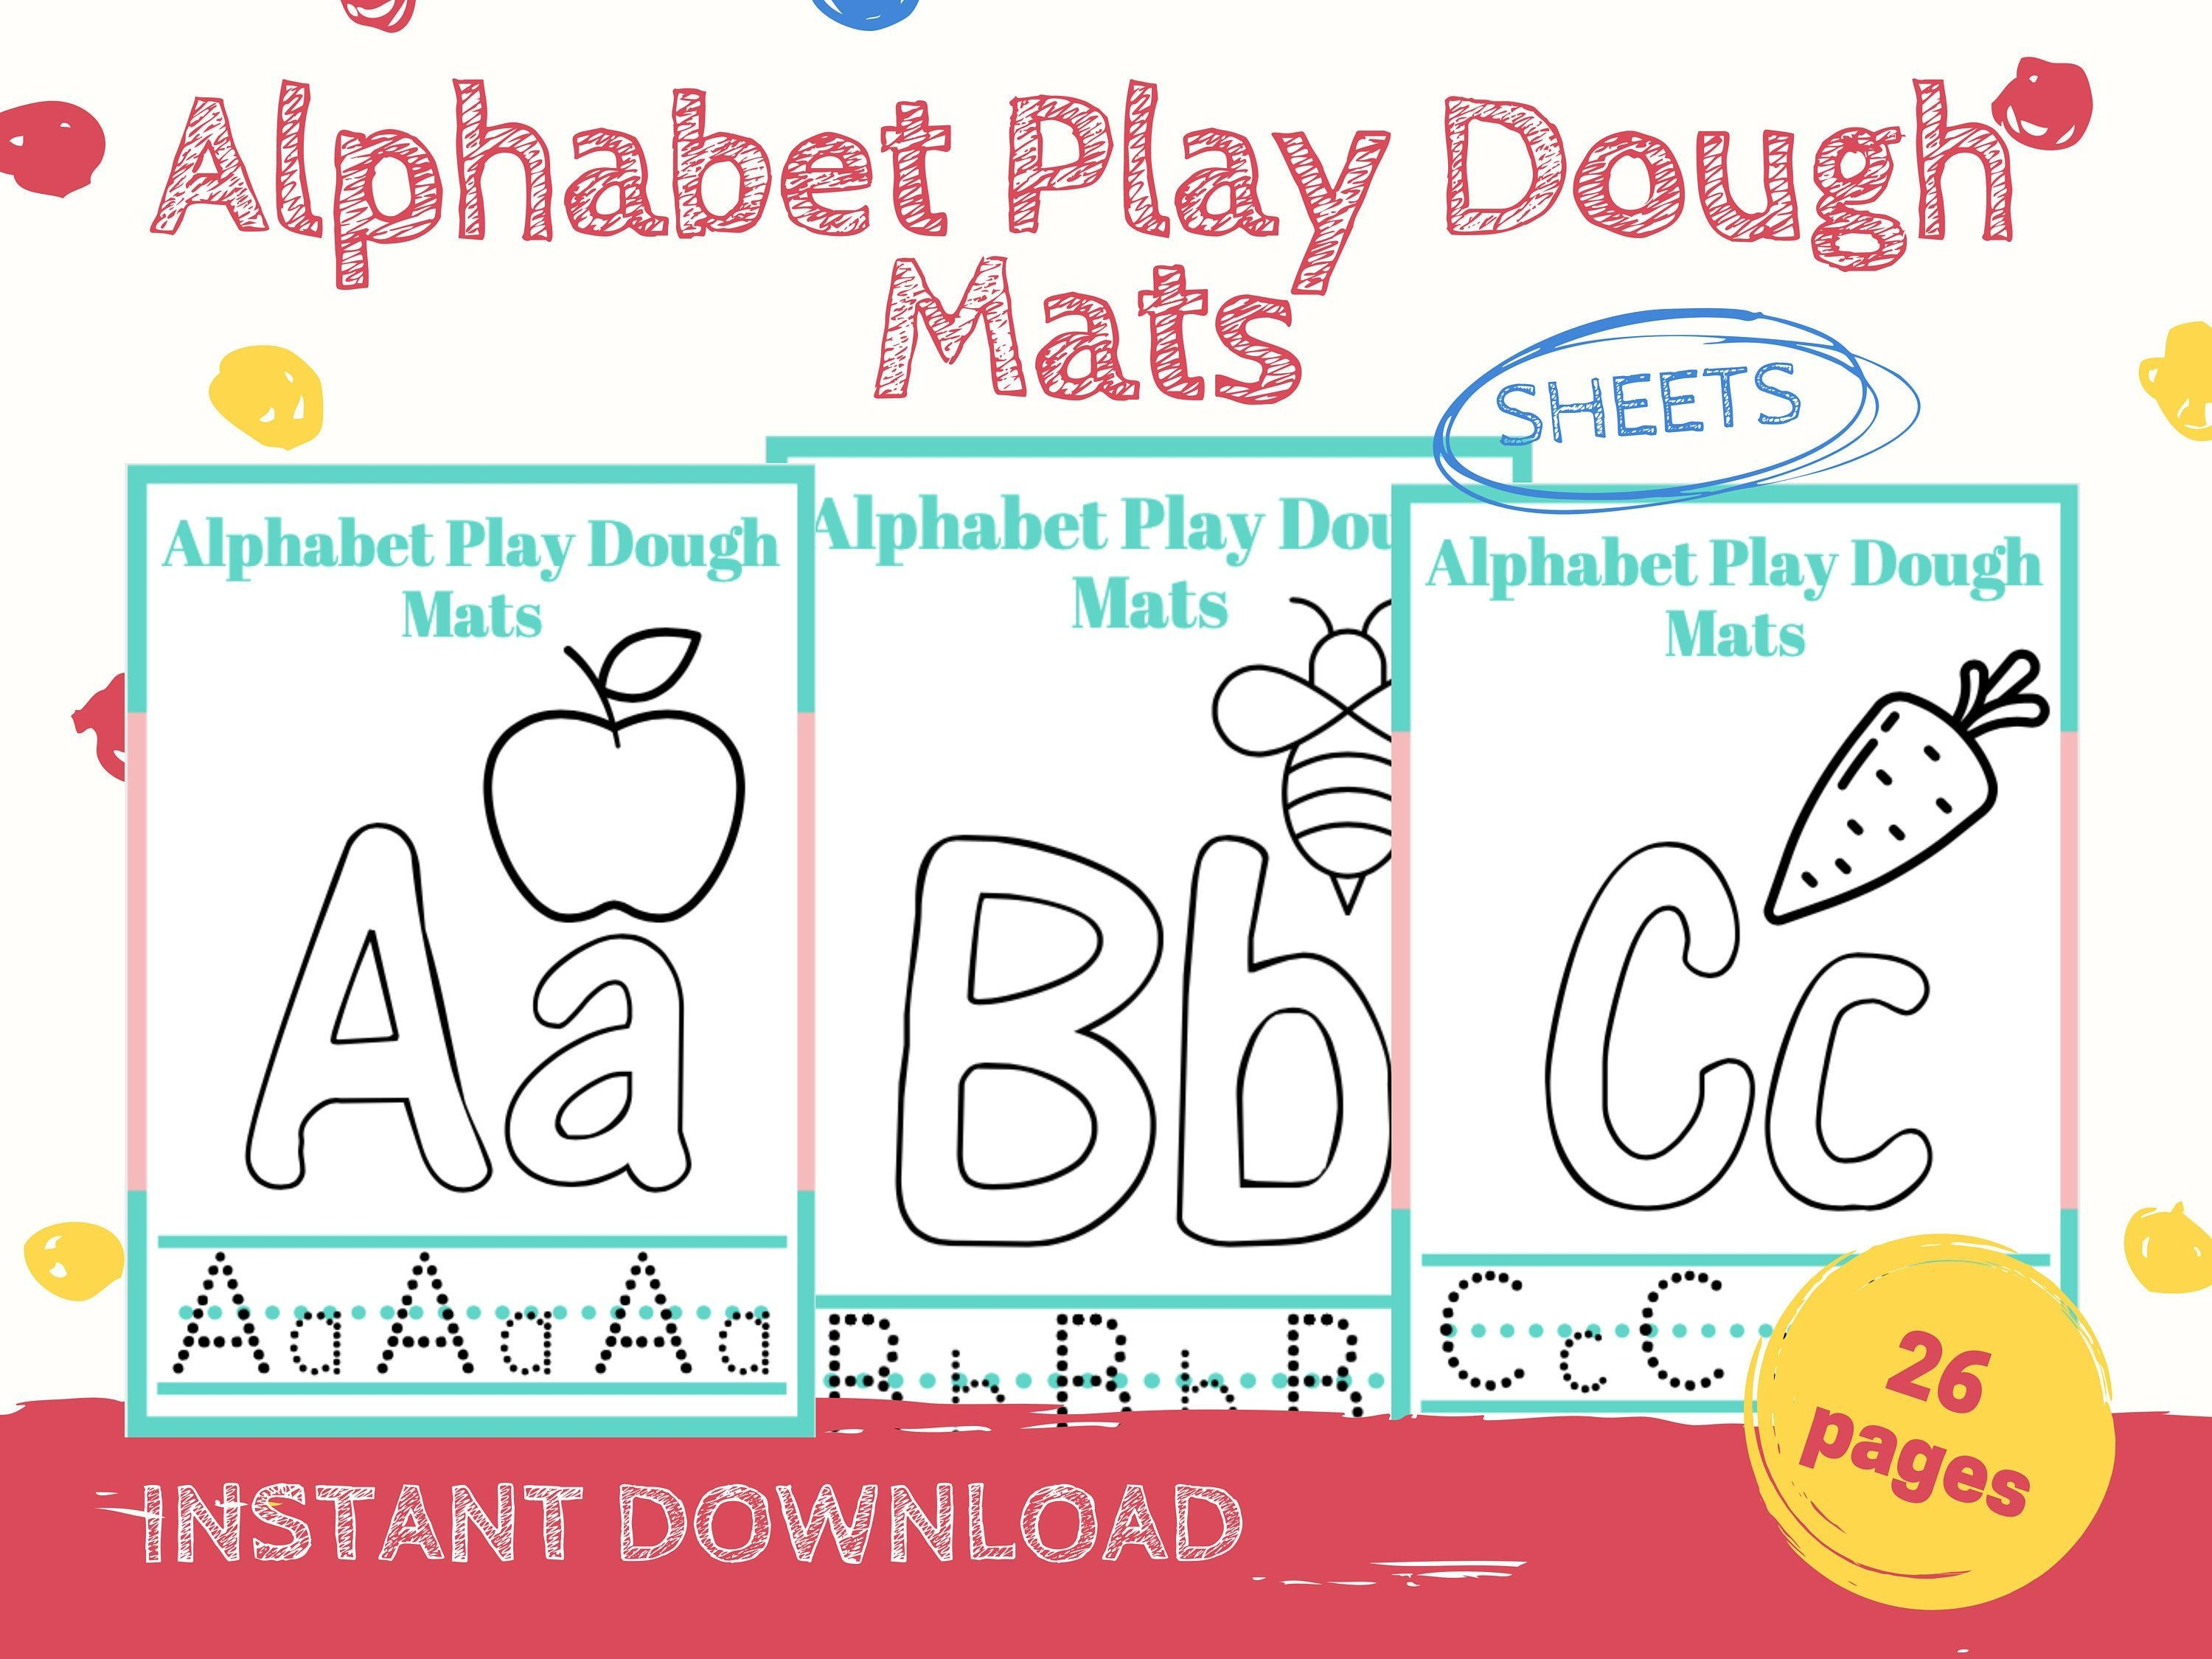 Play Dough Alphabet Mats Printable Play Dough Mats Tracing Mats Letter Formation Play Dough In 2020 Playdough Activities Playdough Busy Book